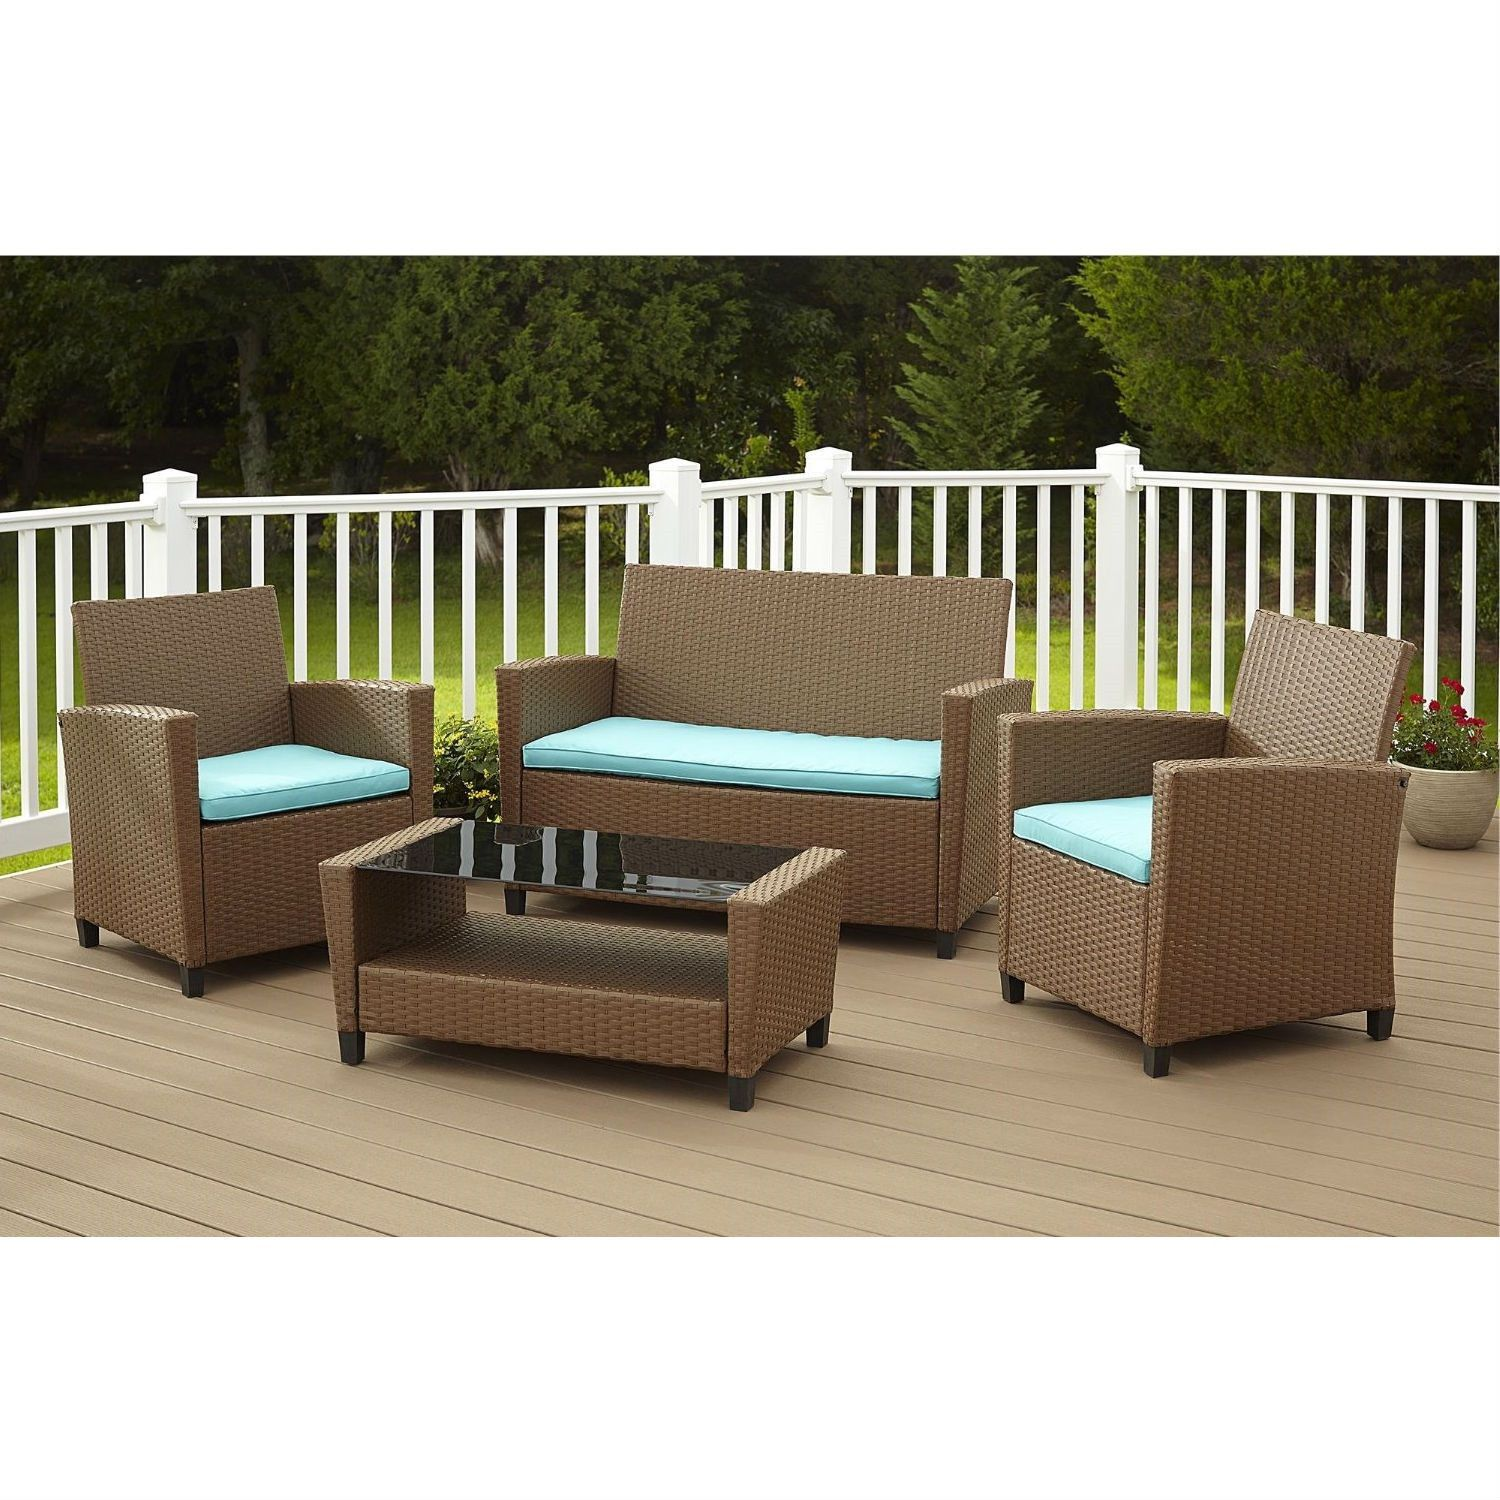 e12745ab3191a6d78ab9e2a18cbb273c Top Result 52 Lovely Sectional Patio Furniture Clearance Photography 2017 Pkt6